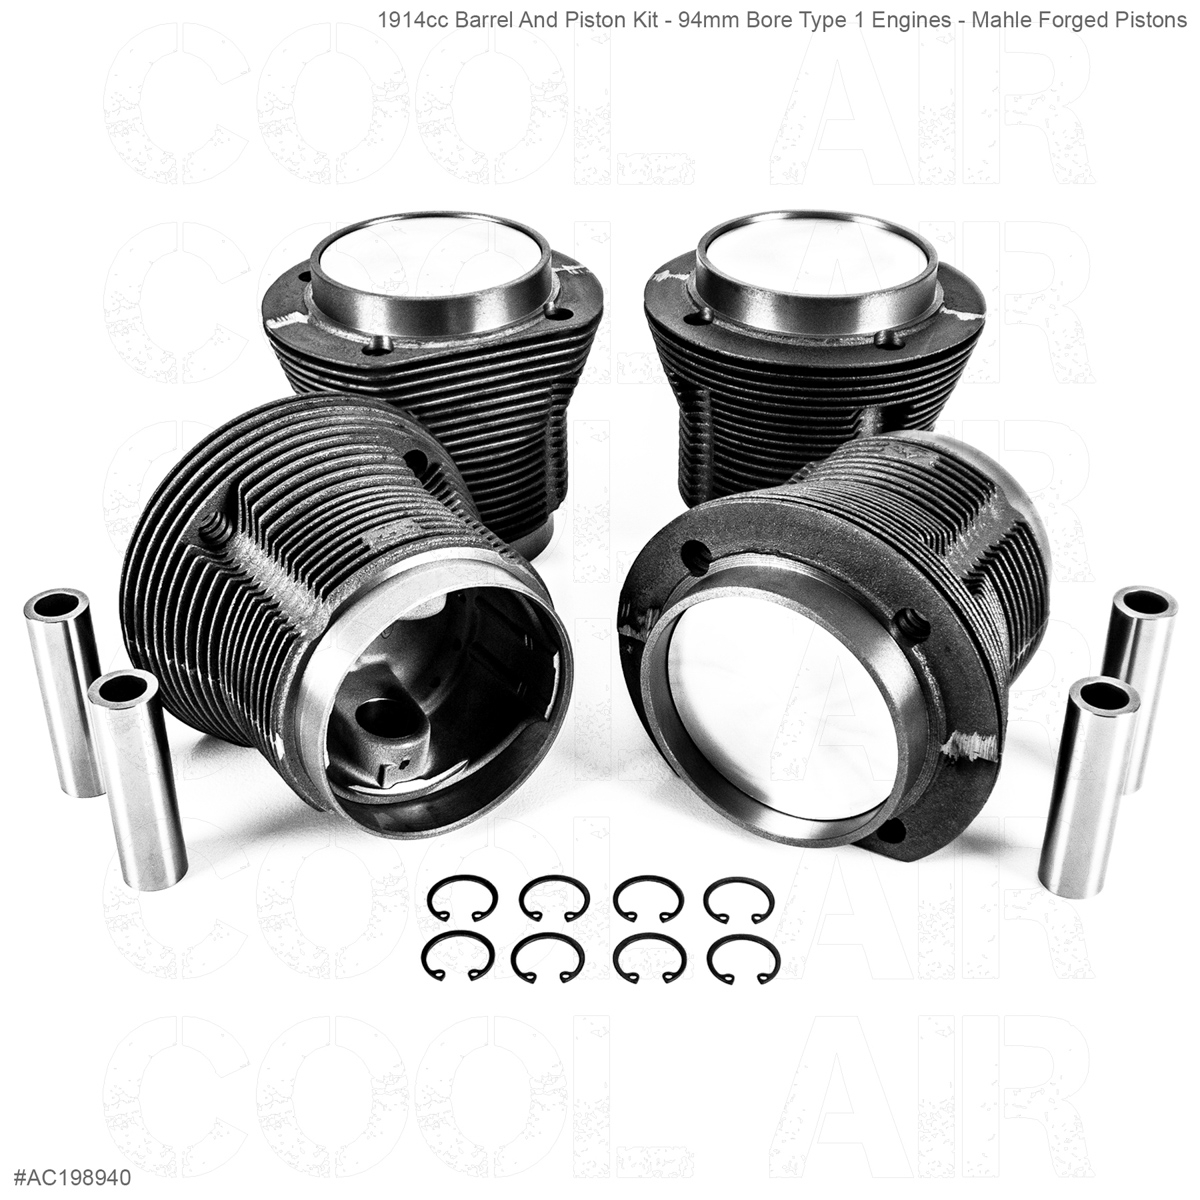 1914cc Barrel And Piston Kit - 94mm Bore Type 1 Engines - Mahle Forged Pistons